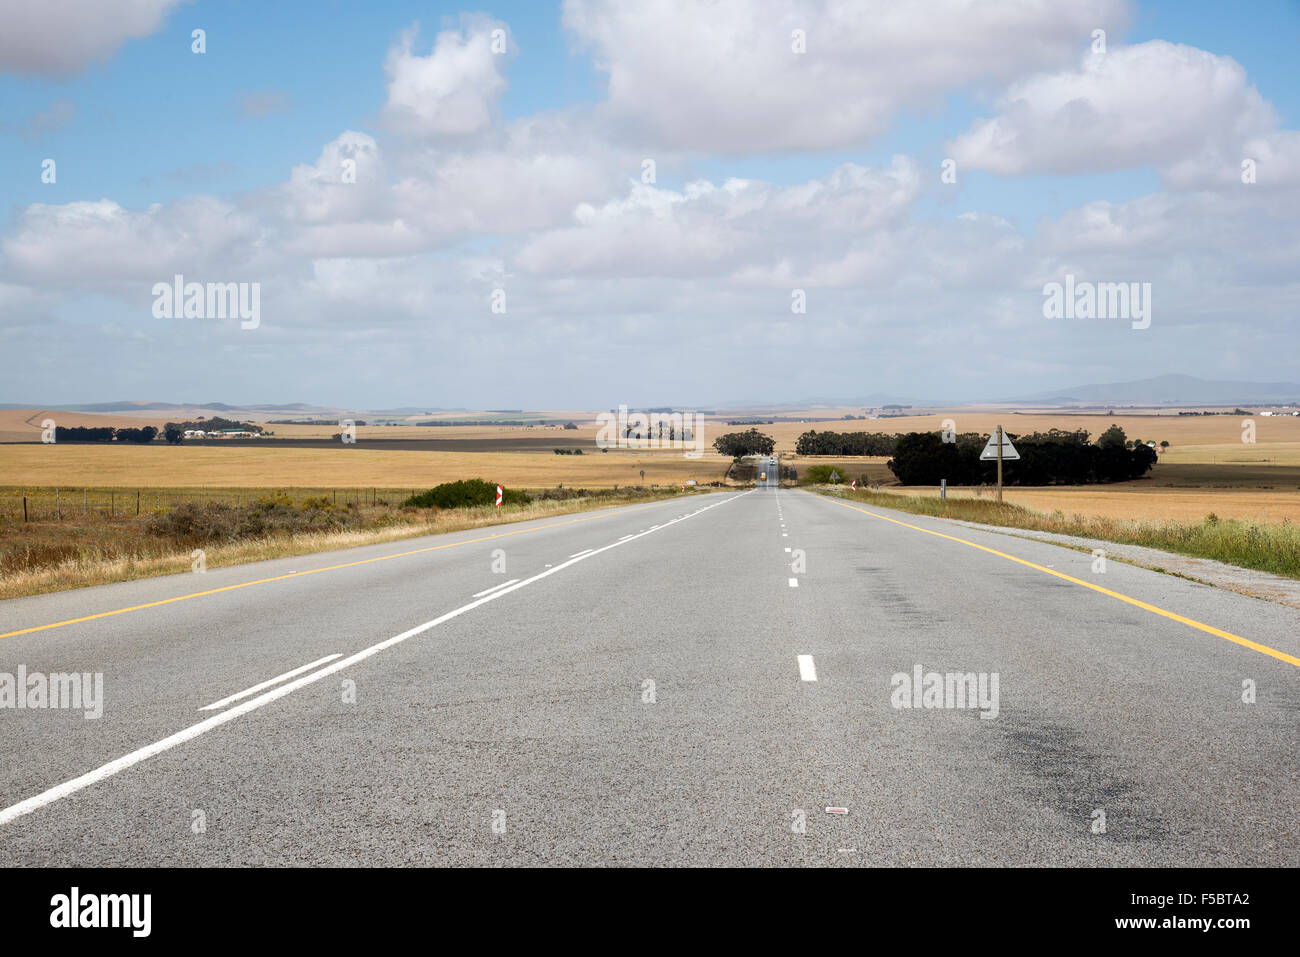 The Cape Namibian Highway passing through the Swartland region South Africa - Stock Image